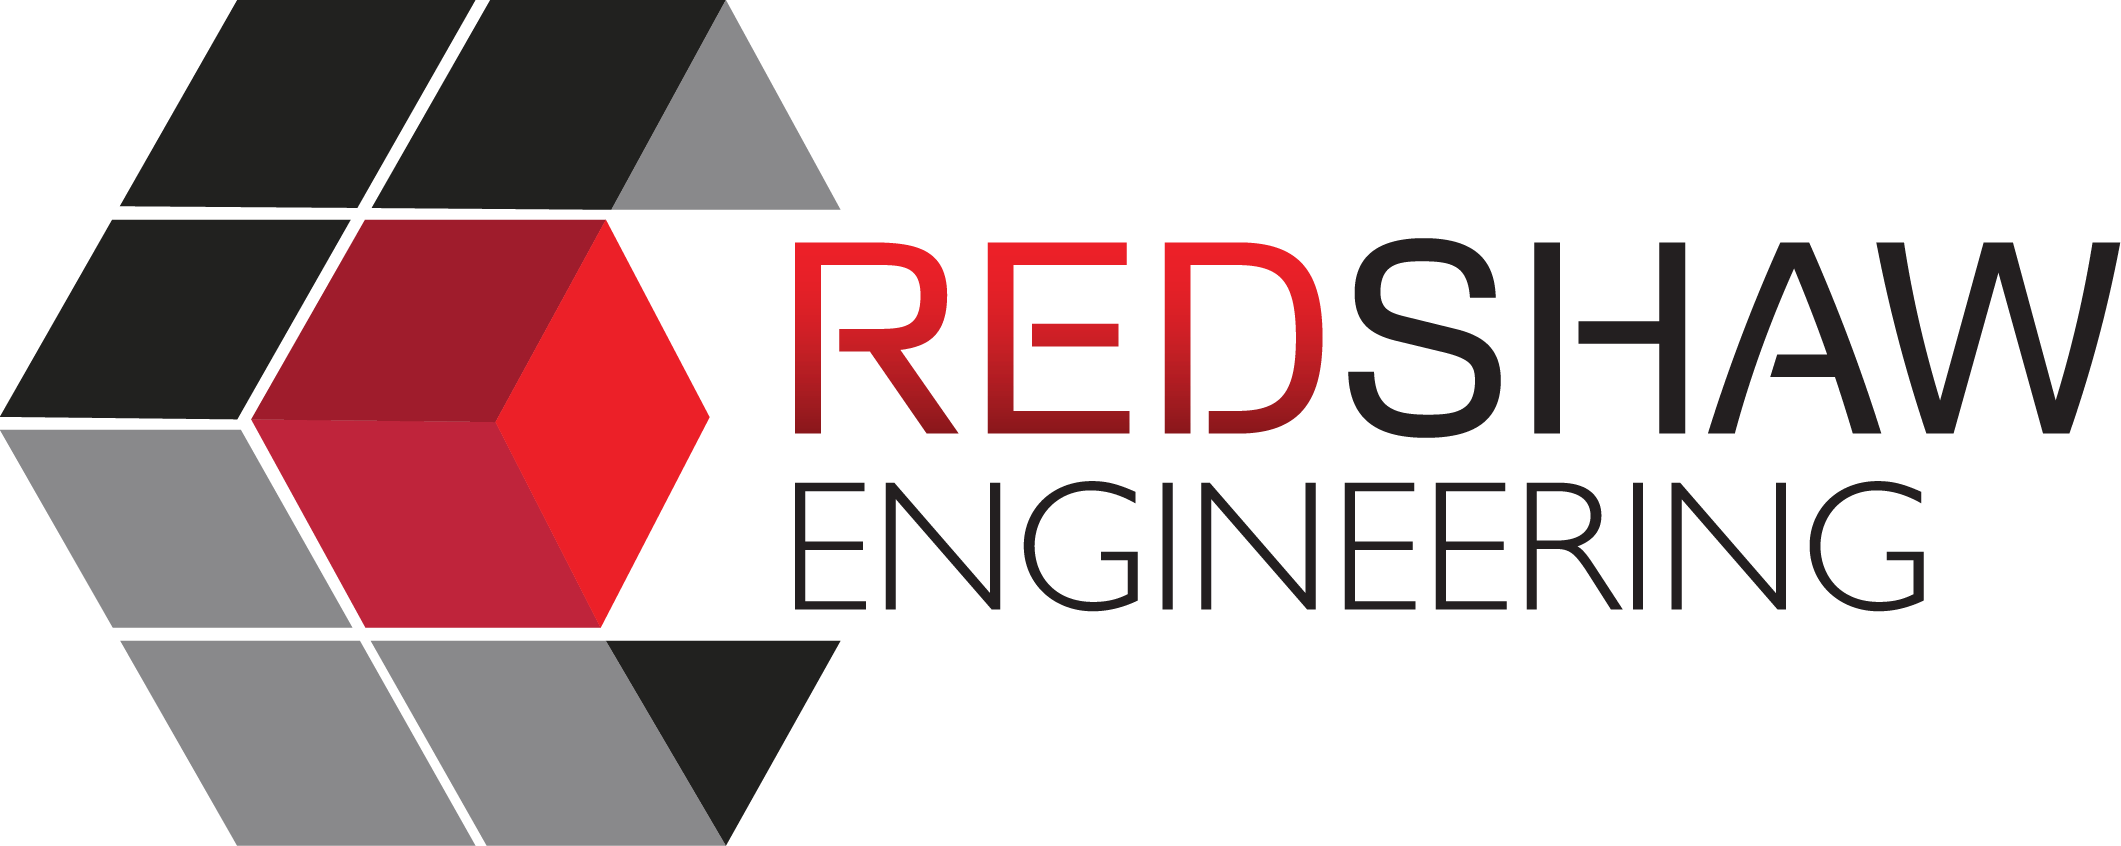 Redshaw Engineering